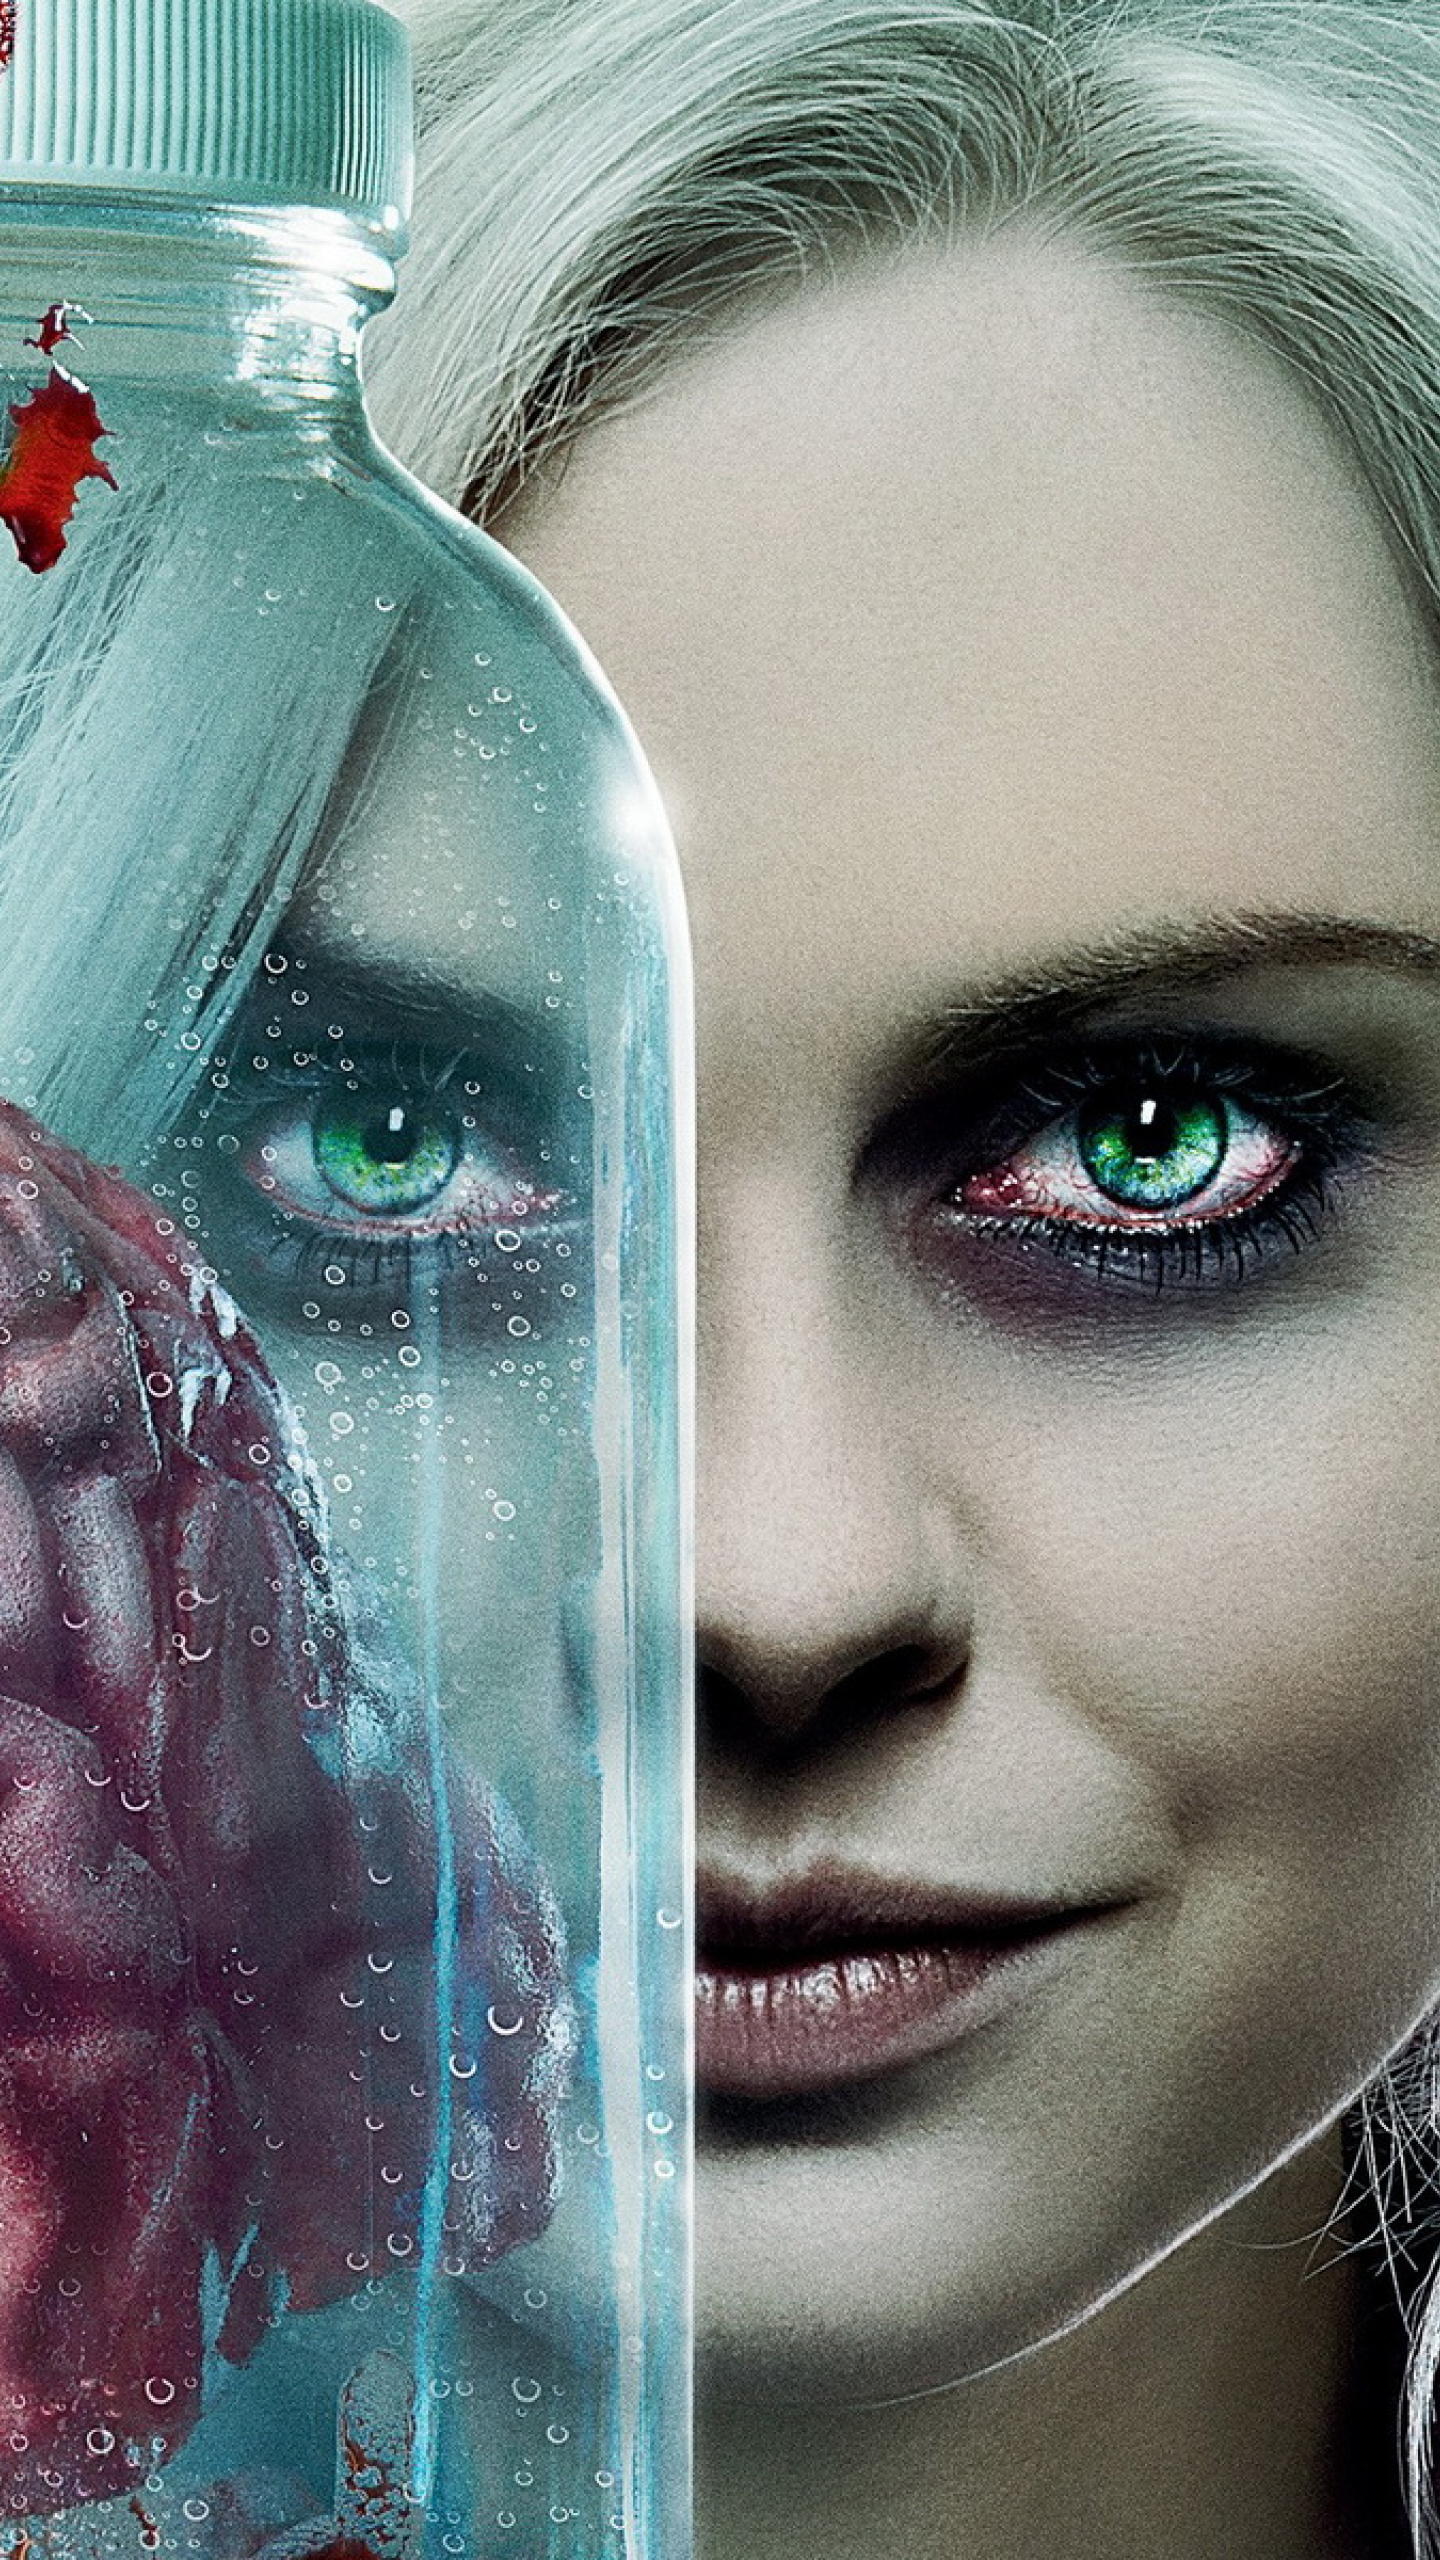 download izombie, rose mciver, olivia moore 1440x2560 resolution